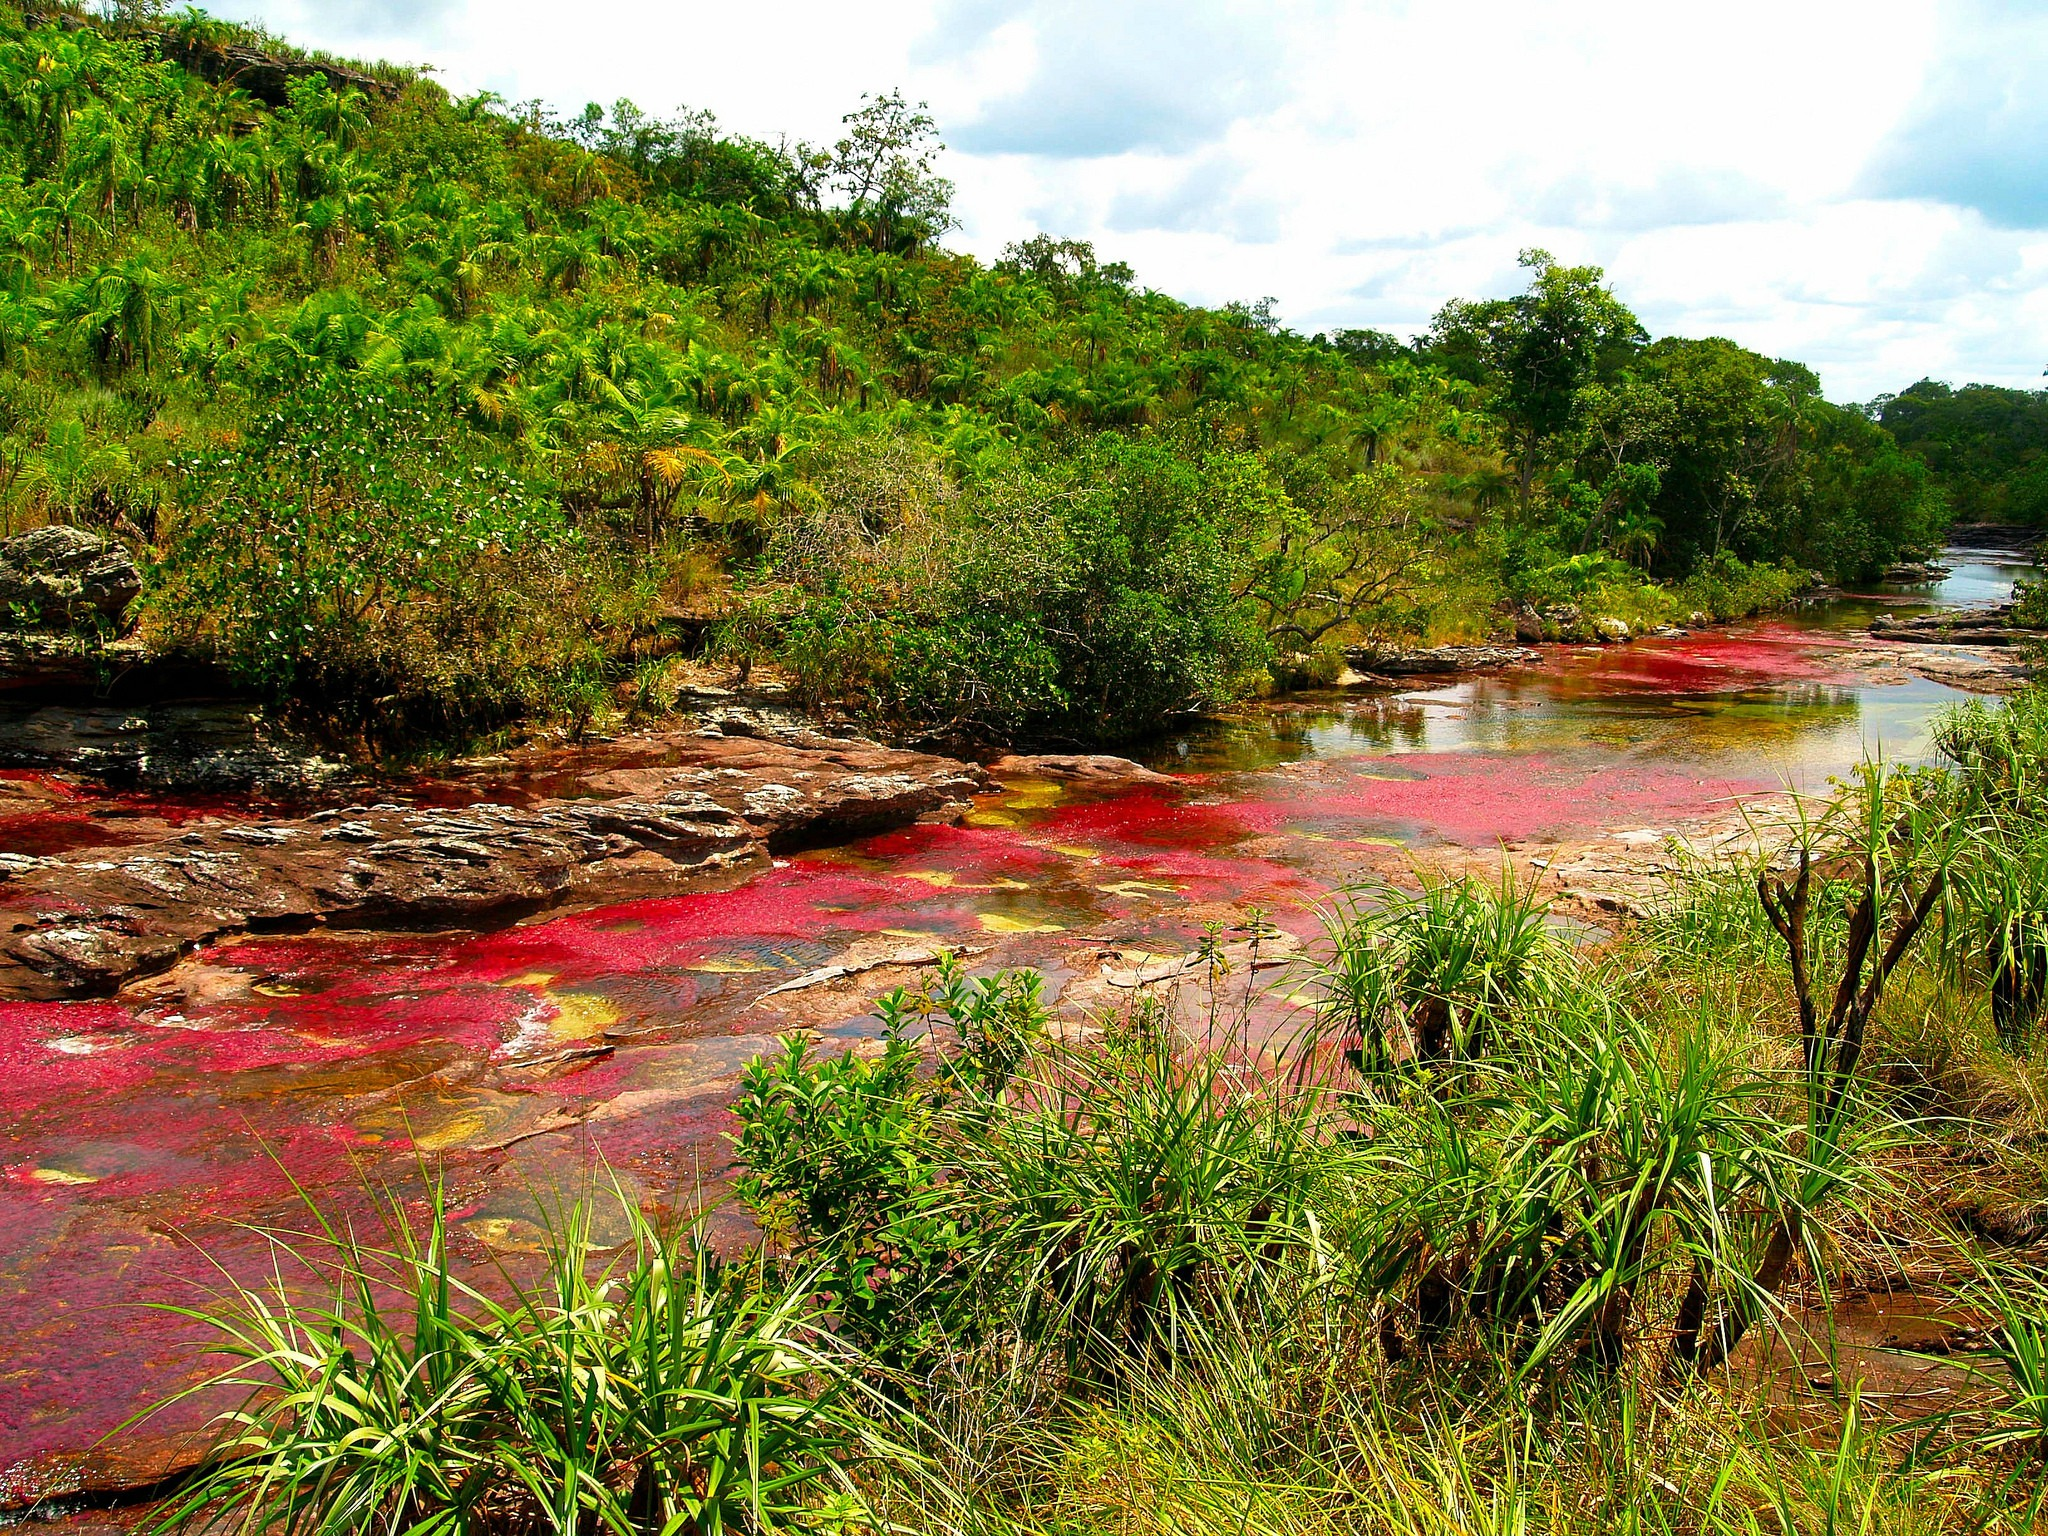 Cano Cristales The River Of Seven Colors moreover House Plant together with 8000376430 in addition Eelectriccity together with 0 电鳗. on electric eel